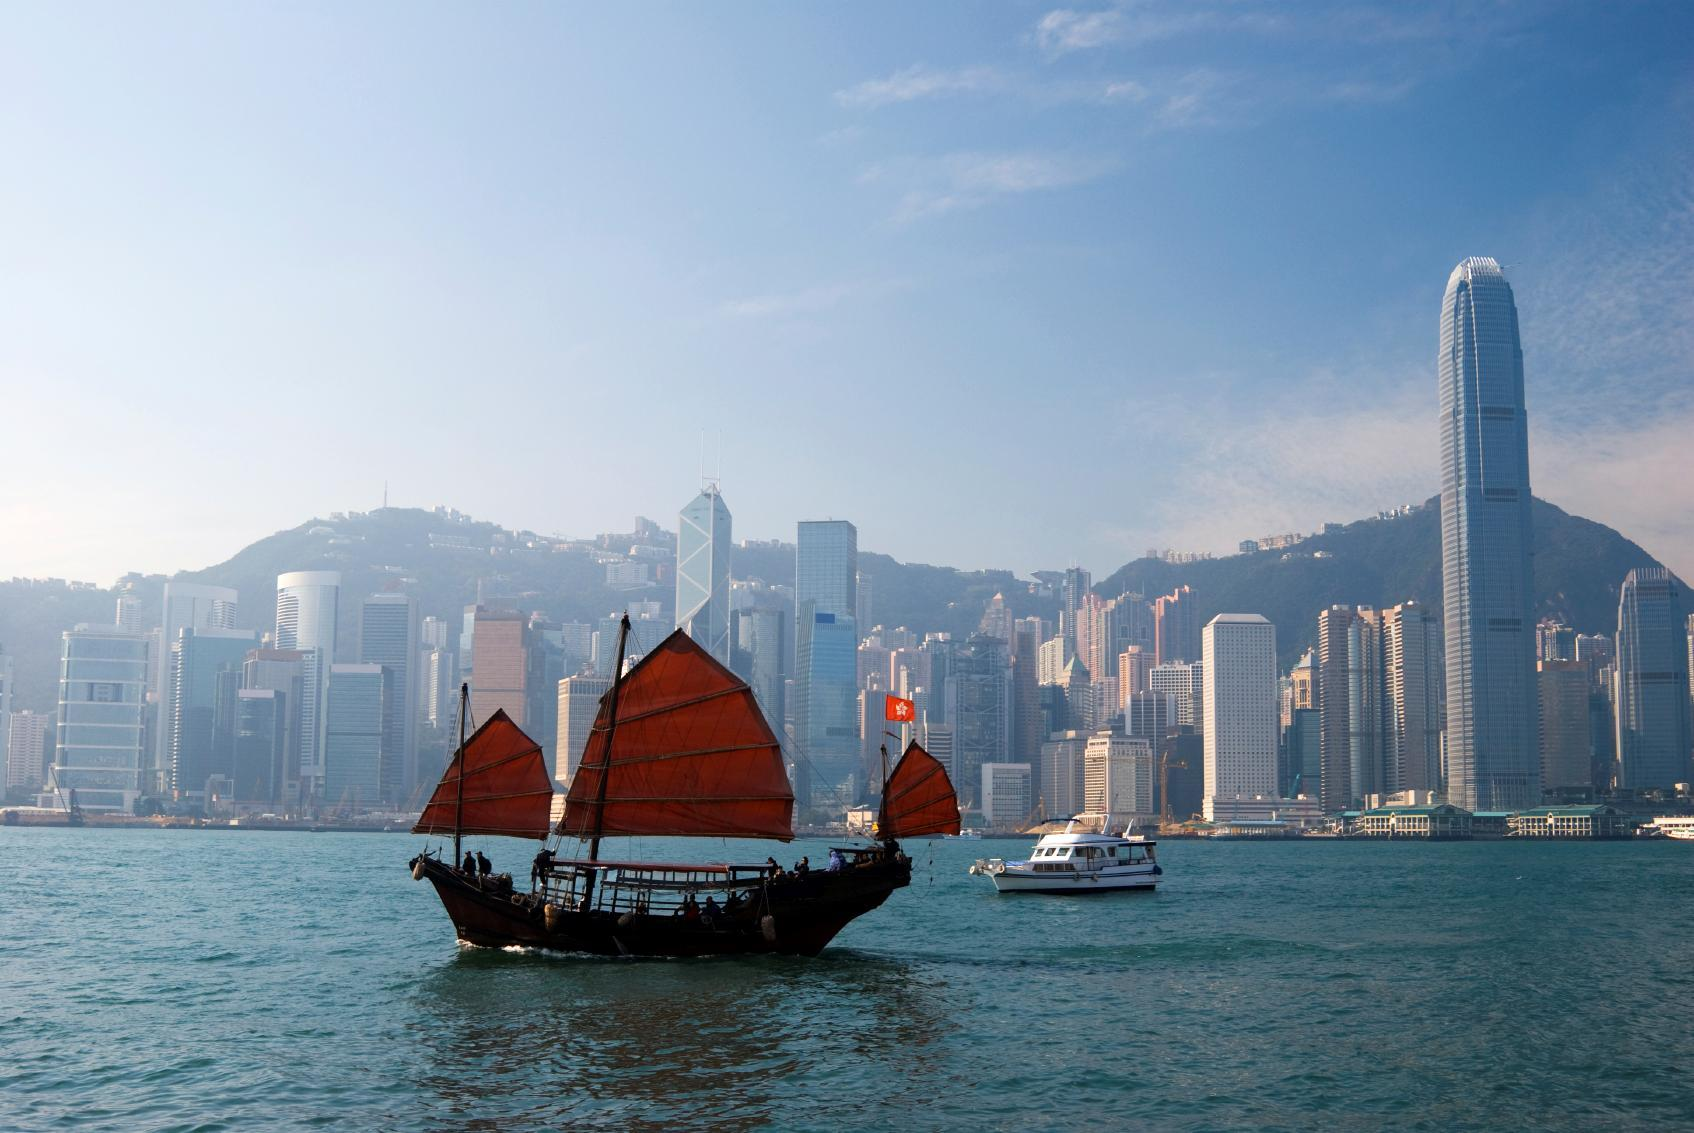 Hong Kong Latest HD Wallpapers and Pictures | HD Wallapers for Free